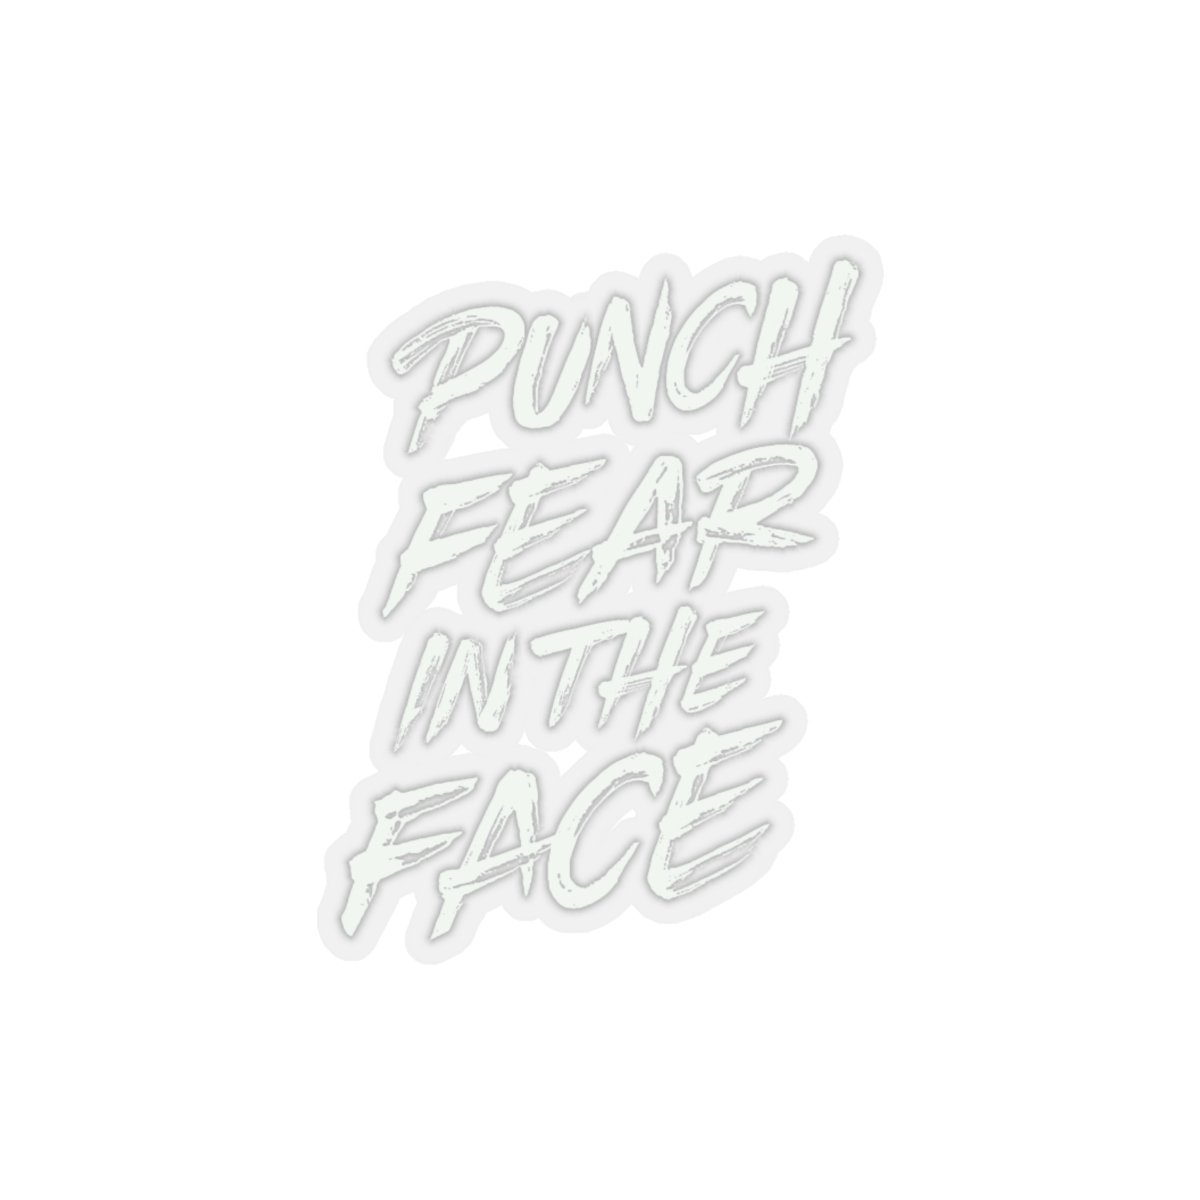 "Punch Fear in the Face - Kiss-Cut Stickers Stickers Printify 3x3"" Transparent"